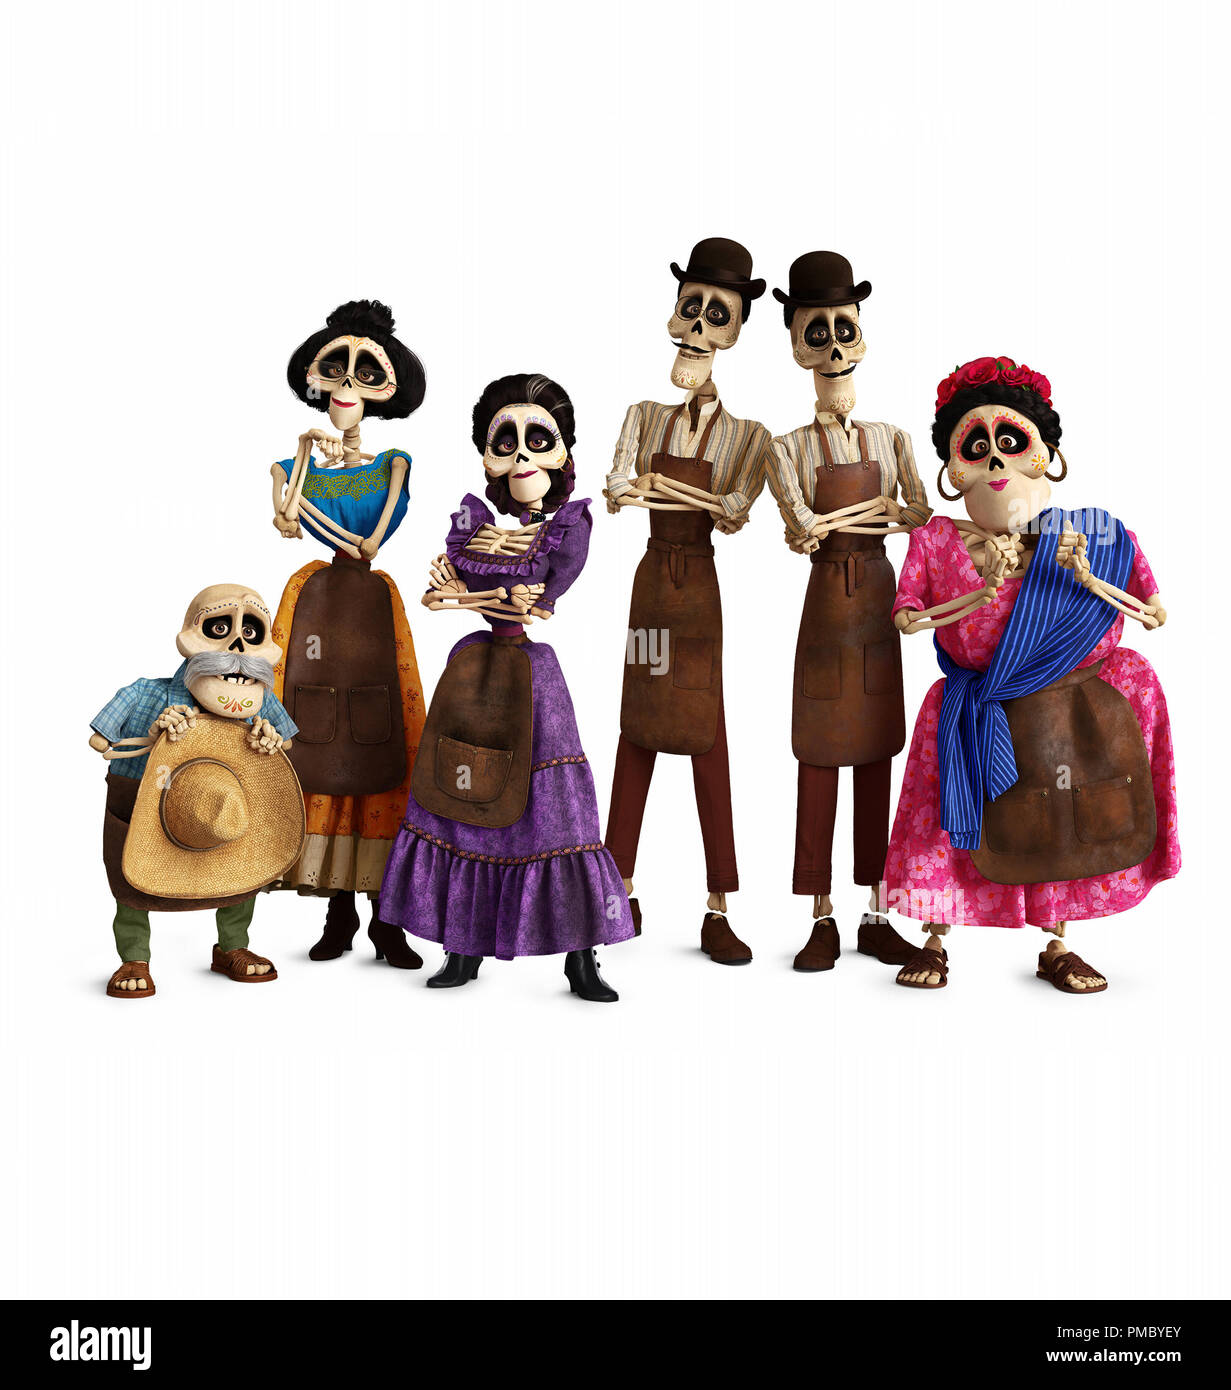 """FUNNY BONES – In Disney/Pixar's """"Coco,"""" several members of the Rivera family call the Land of the Dead home, including (from L-R): Miguel's great-grandfather Papá Julio (voice of Alfonso Arau), Tía Victoria, family matriarch and Miguel's great-great-grandmother Mamá Imelda (voice of Alanna Ubach), identical twin uncles Tío Oscar and Tío Felipe (both voice of Herbert Siguenza) and Tía Rosita (voice of Selene Luna).Directed by Lee Unkrich, co-directed by Adrian Molina and produced by Darla K. Anderson, Disney/Pixar's """"Coco"""" opens in U.S. theaters on Nov. 22, 2017. ©2017 Disney•Pixar. All Rights - Stock Image"""